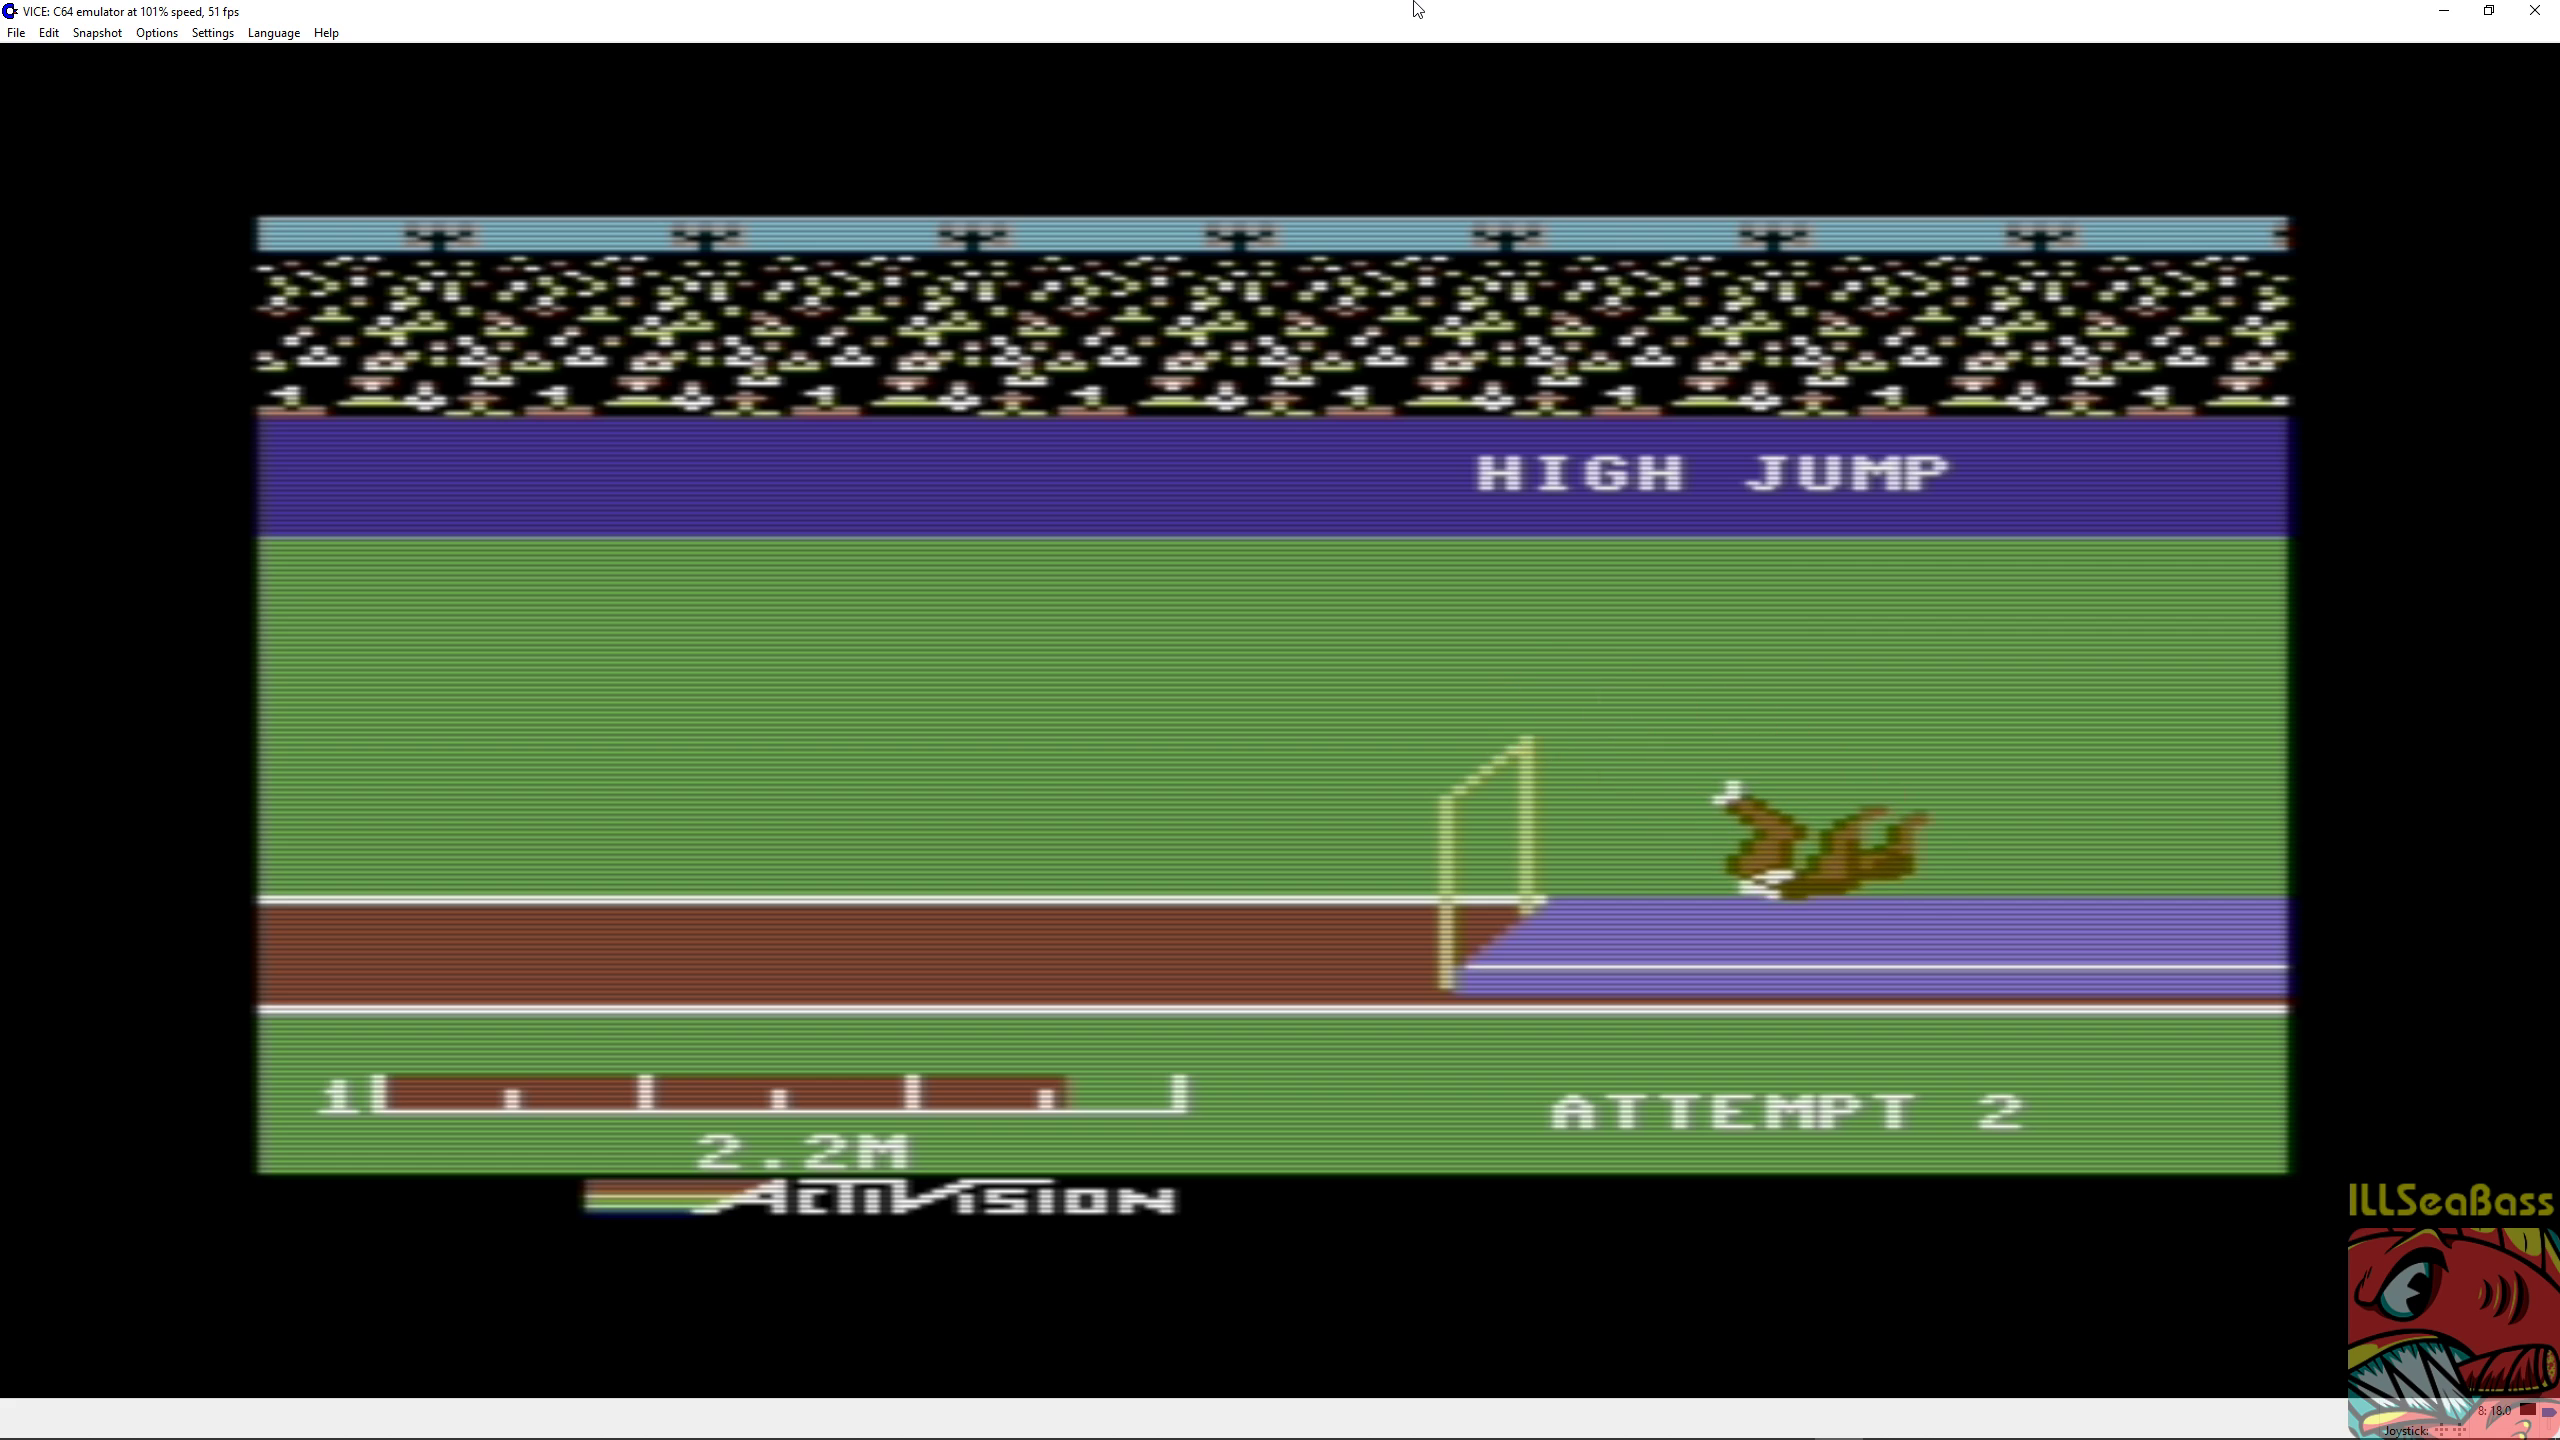 ILLSeaBass: Decathlon: High Jump [Meters] (Commodore 64 Emulated) 22 points on 2018-06-30 17:35:47